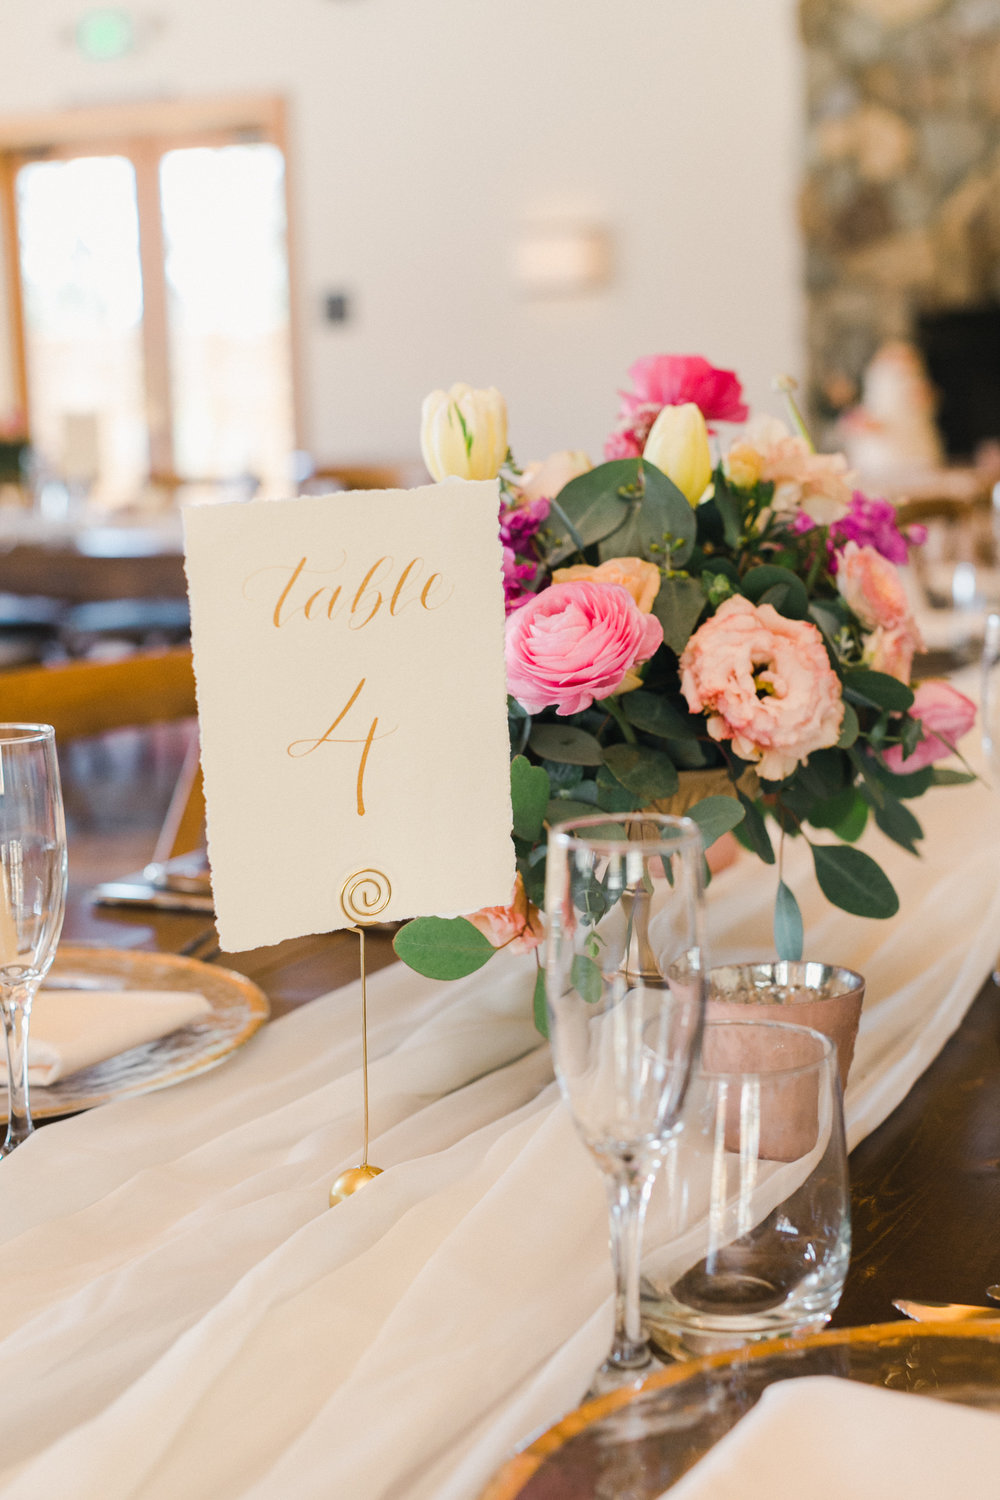 Yosemite wedding table number calligraphy items by paperloveme3.jpg